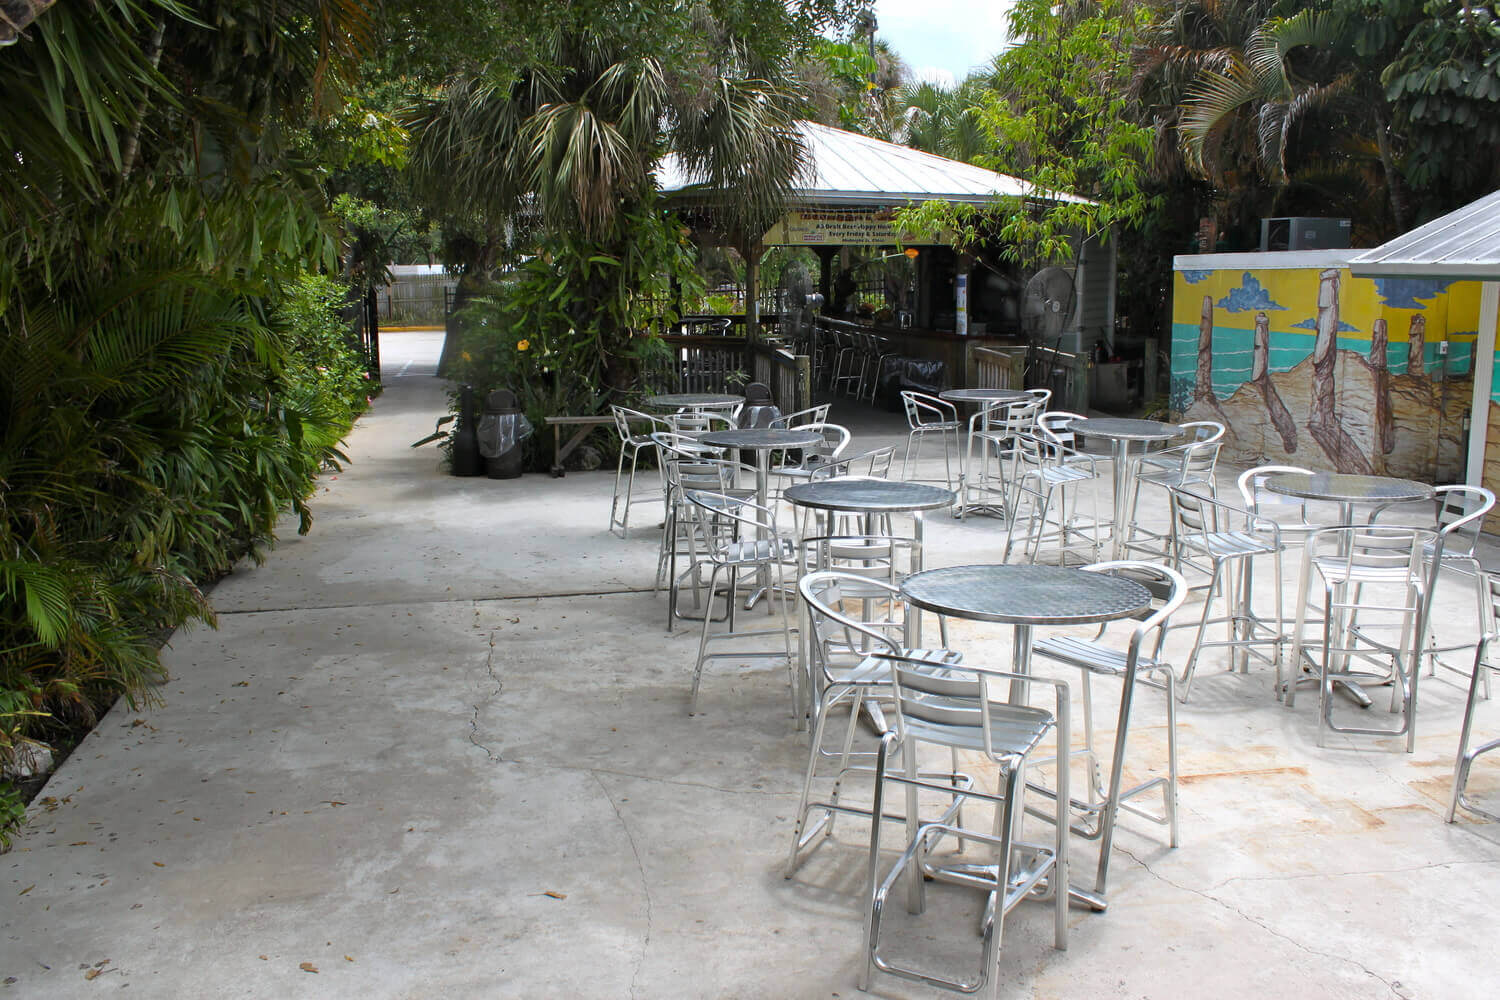 Mainstreet Pub & Restaurant offers Professional Catering in Melbourne, FL.